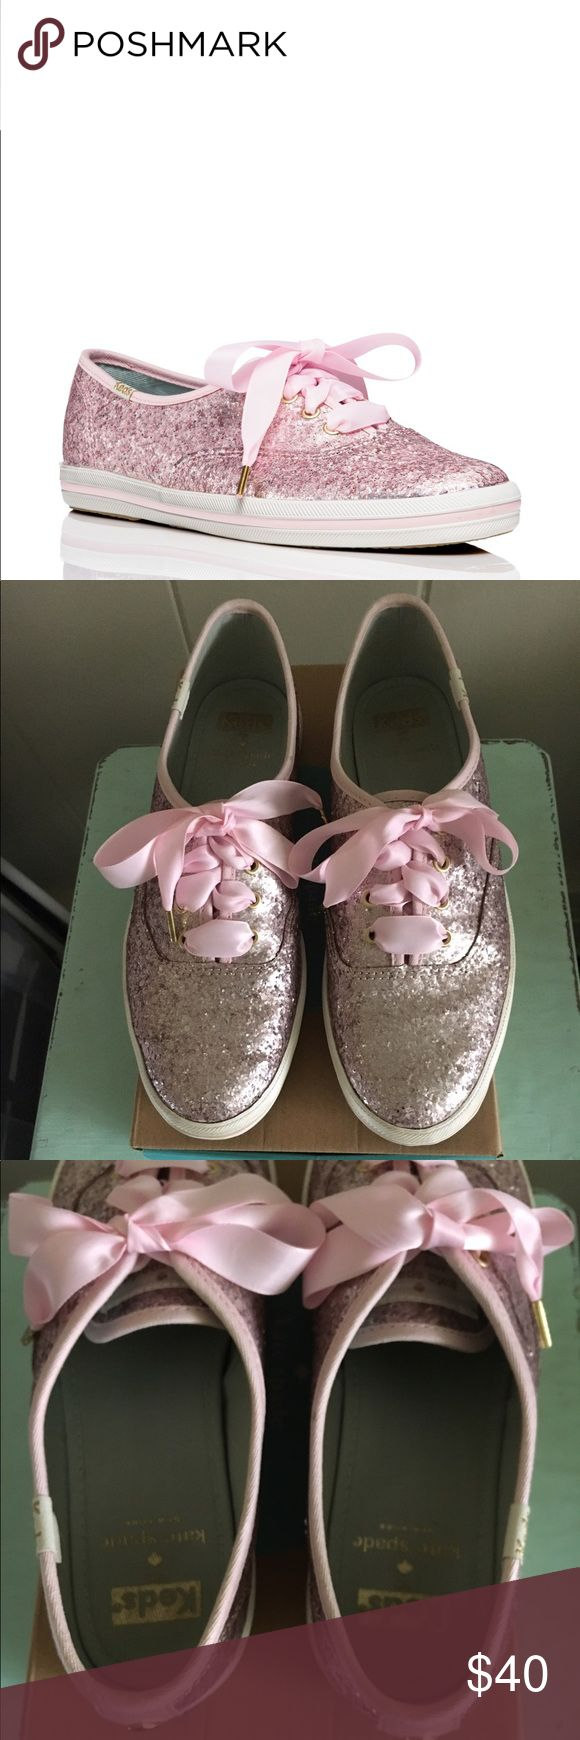 ✨Keds for Kate Spade Glitter Sneakers ✨ Keds for Kate Spade glitter sneakers in iced pink. Great used condition. Please see all photos. Glitter dipped canvas with a rubber heel. Includes satin and cotton laces. No holds or trades please. kate spade Shoes Sneakers